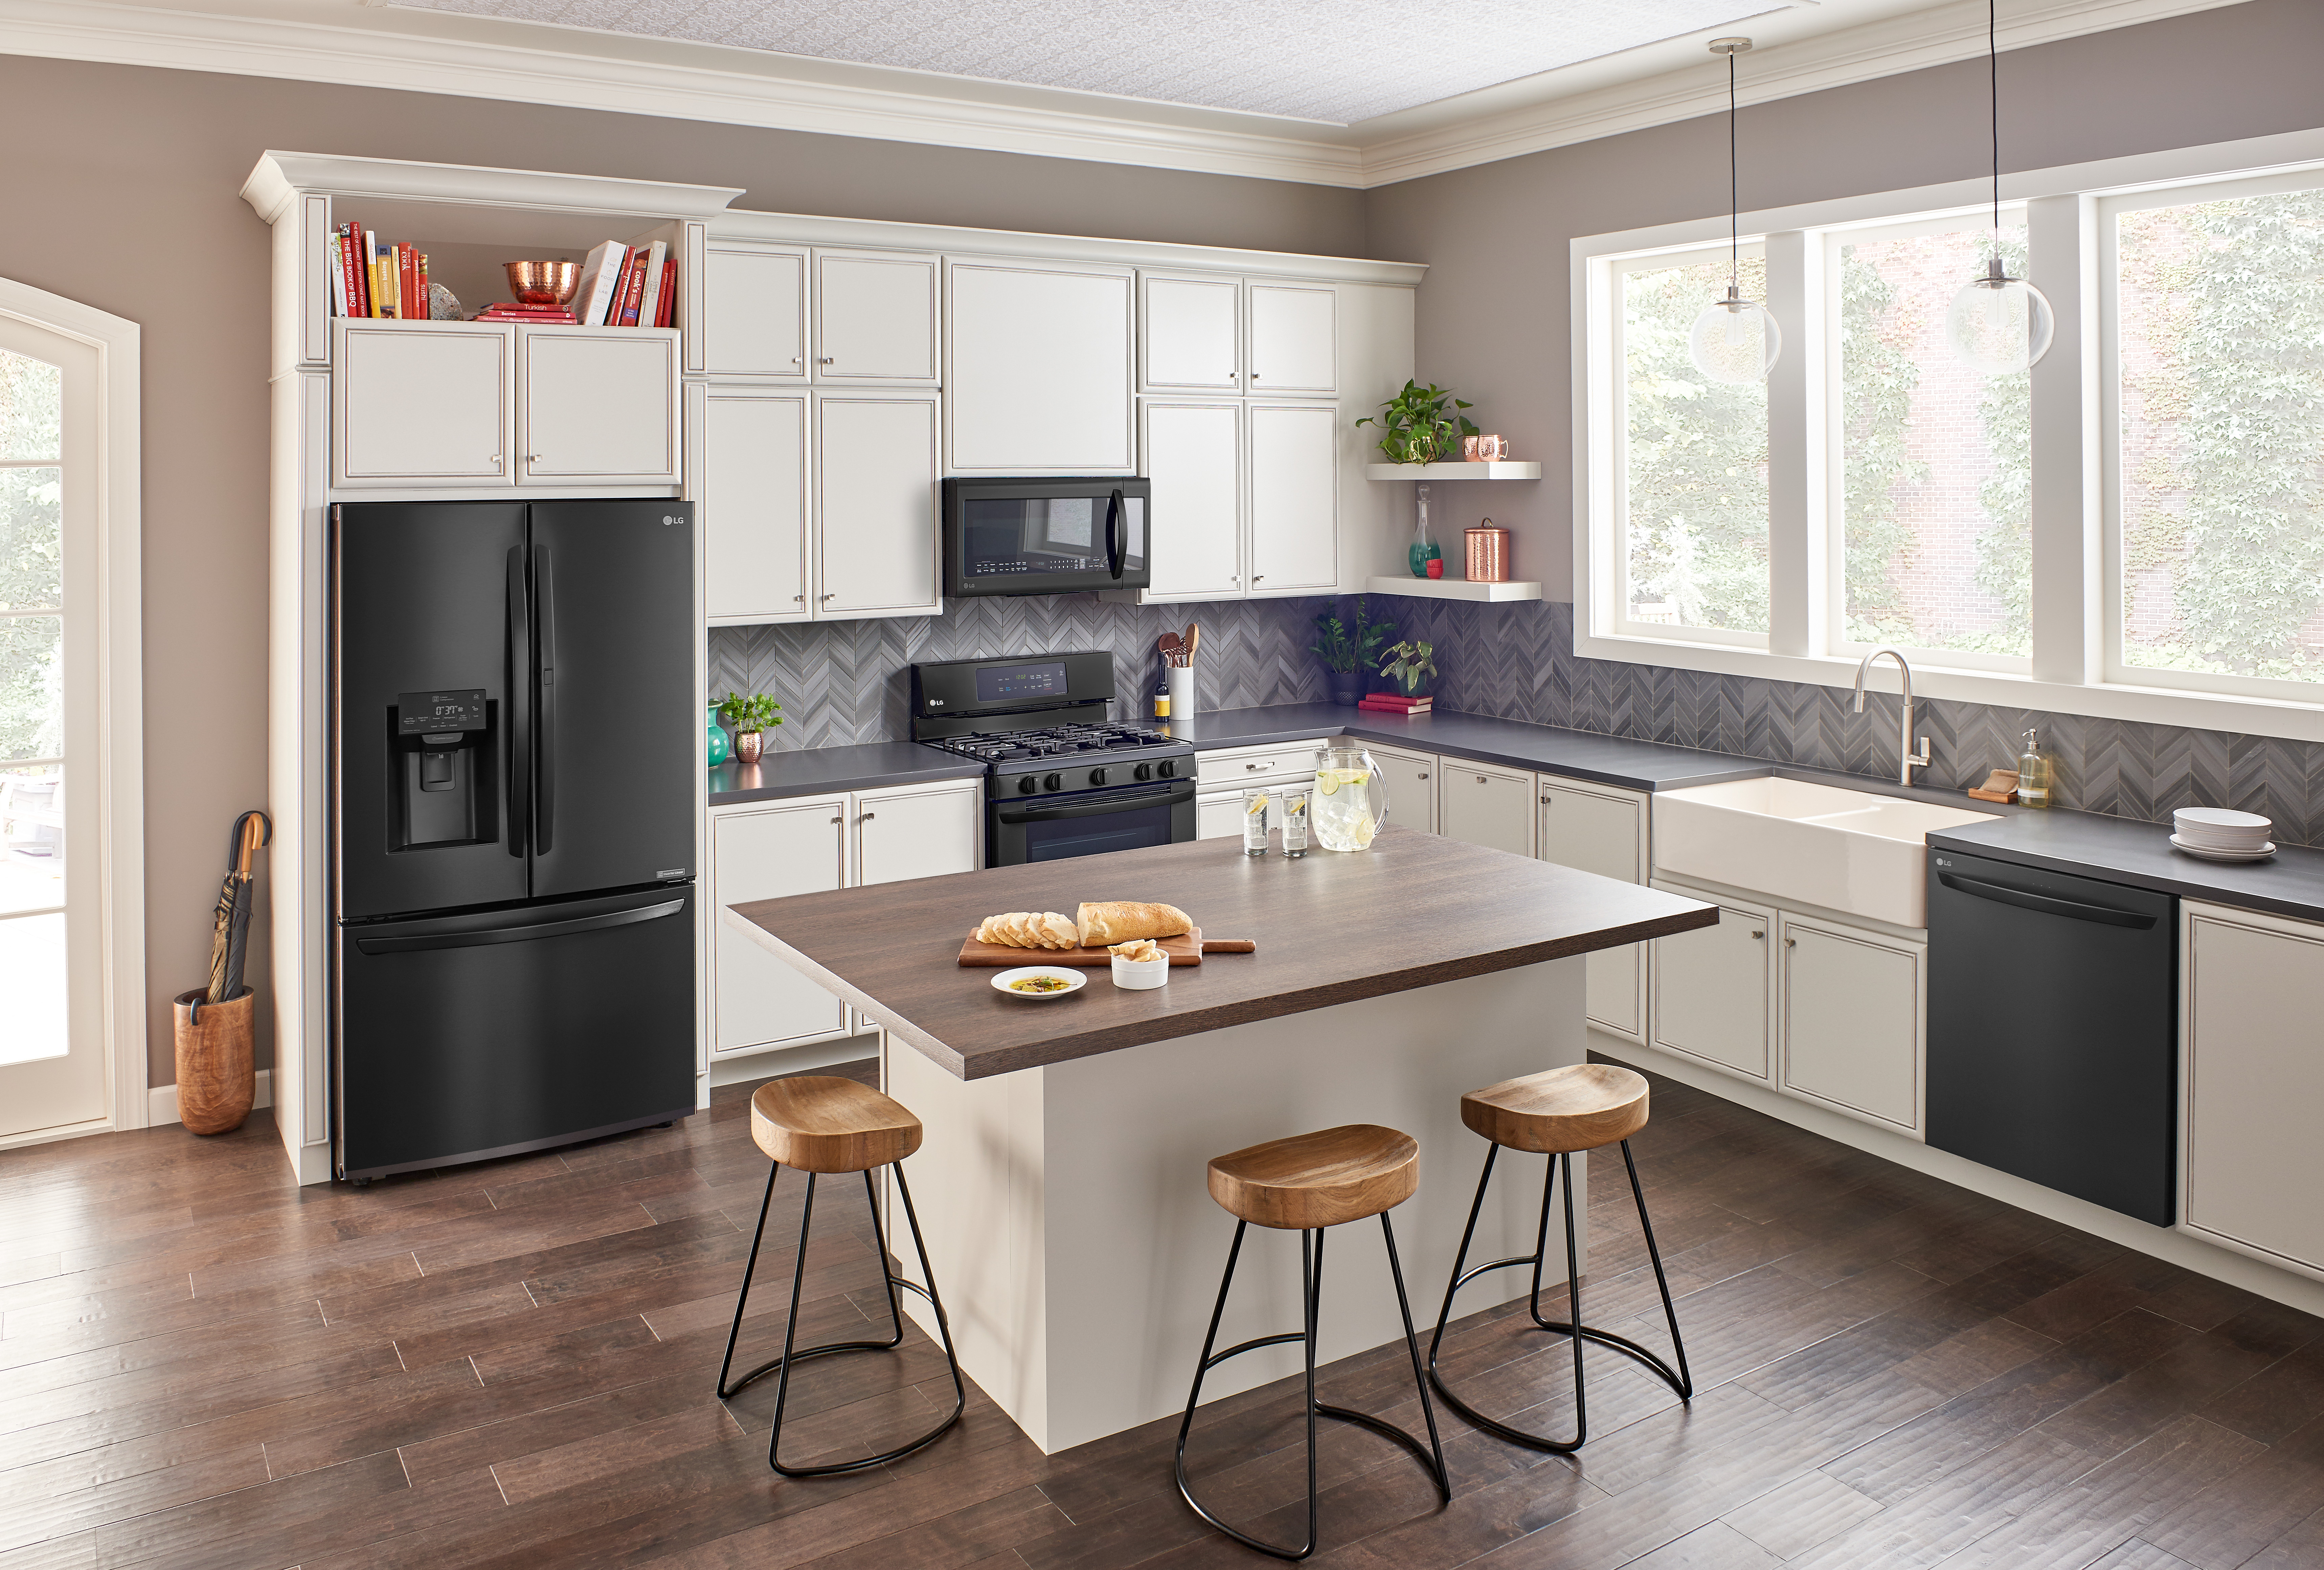 Upgrade your kitchen and laundry room with lg smart appliances from